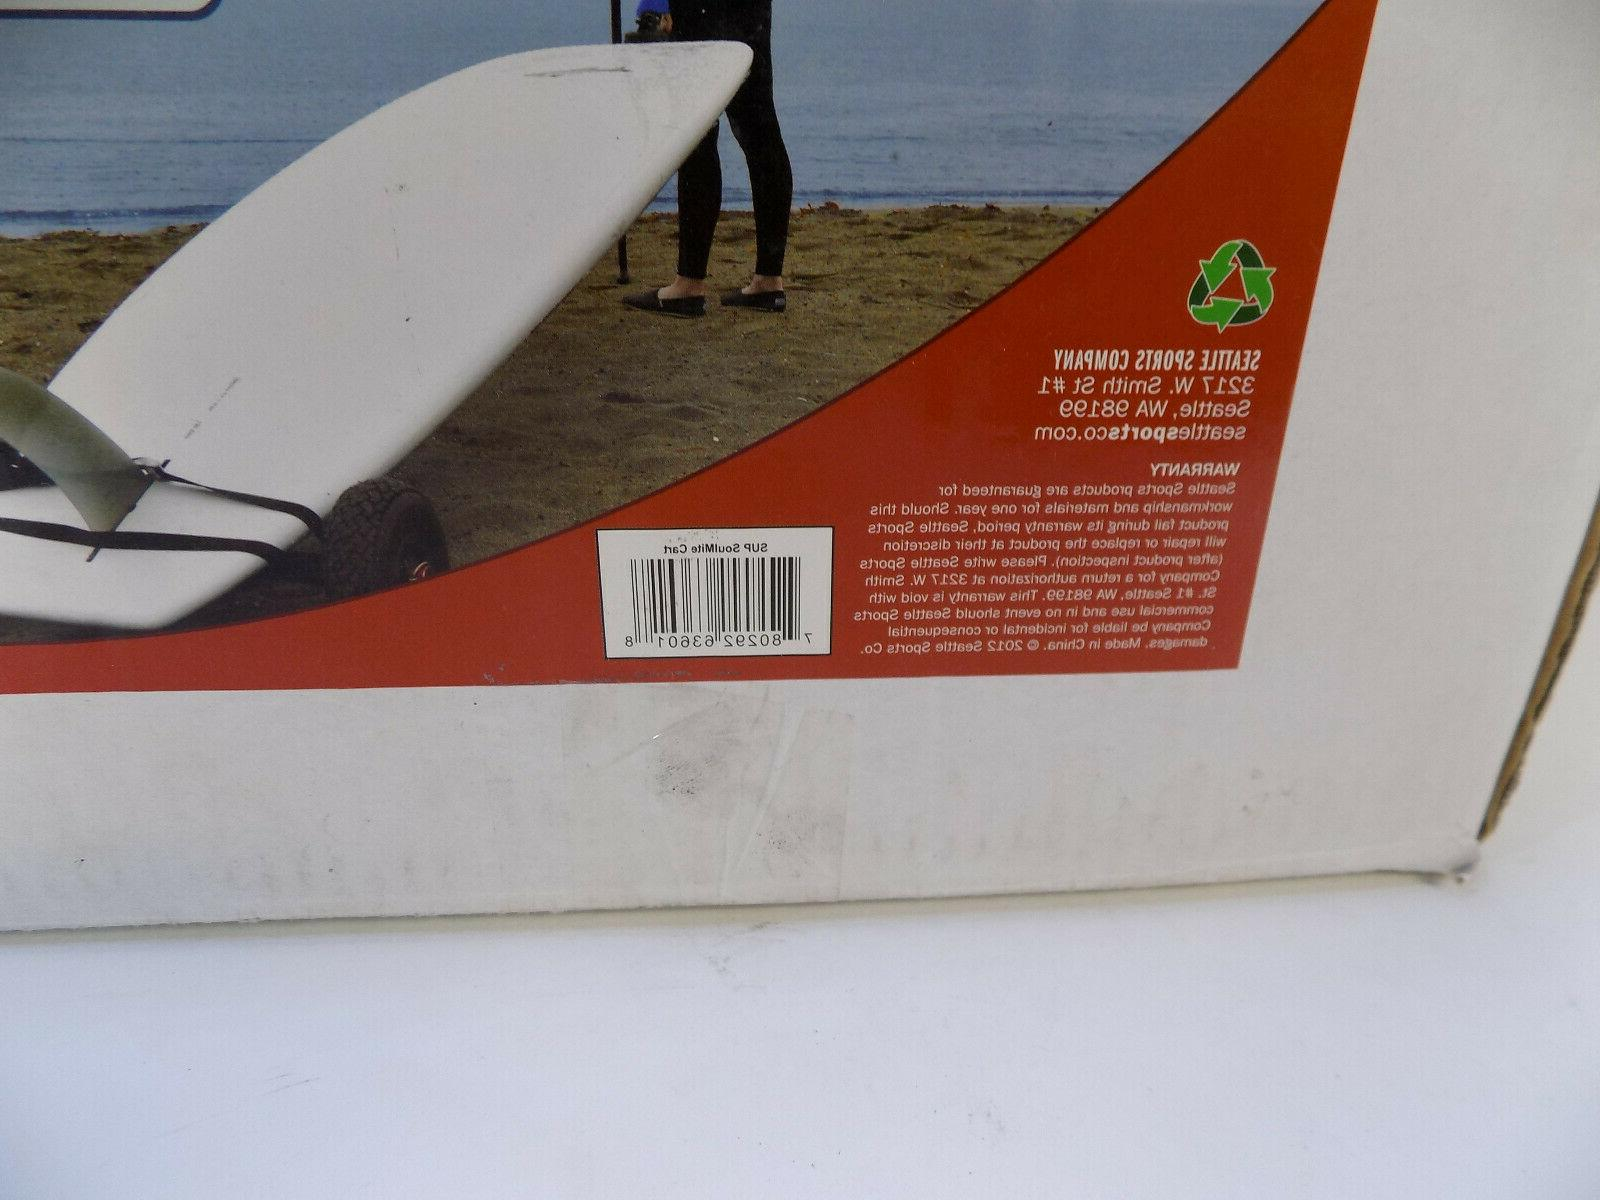 SEATTLE SUP PADDLEBOARD CART SOULMITE